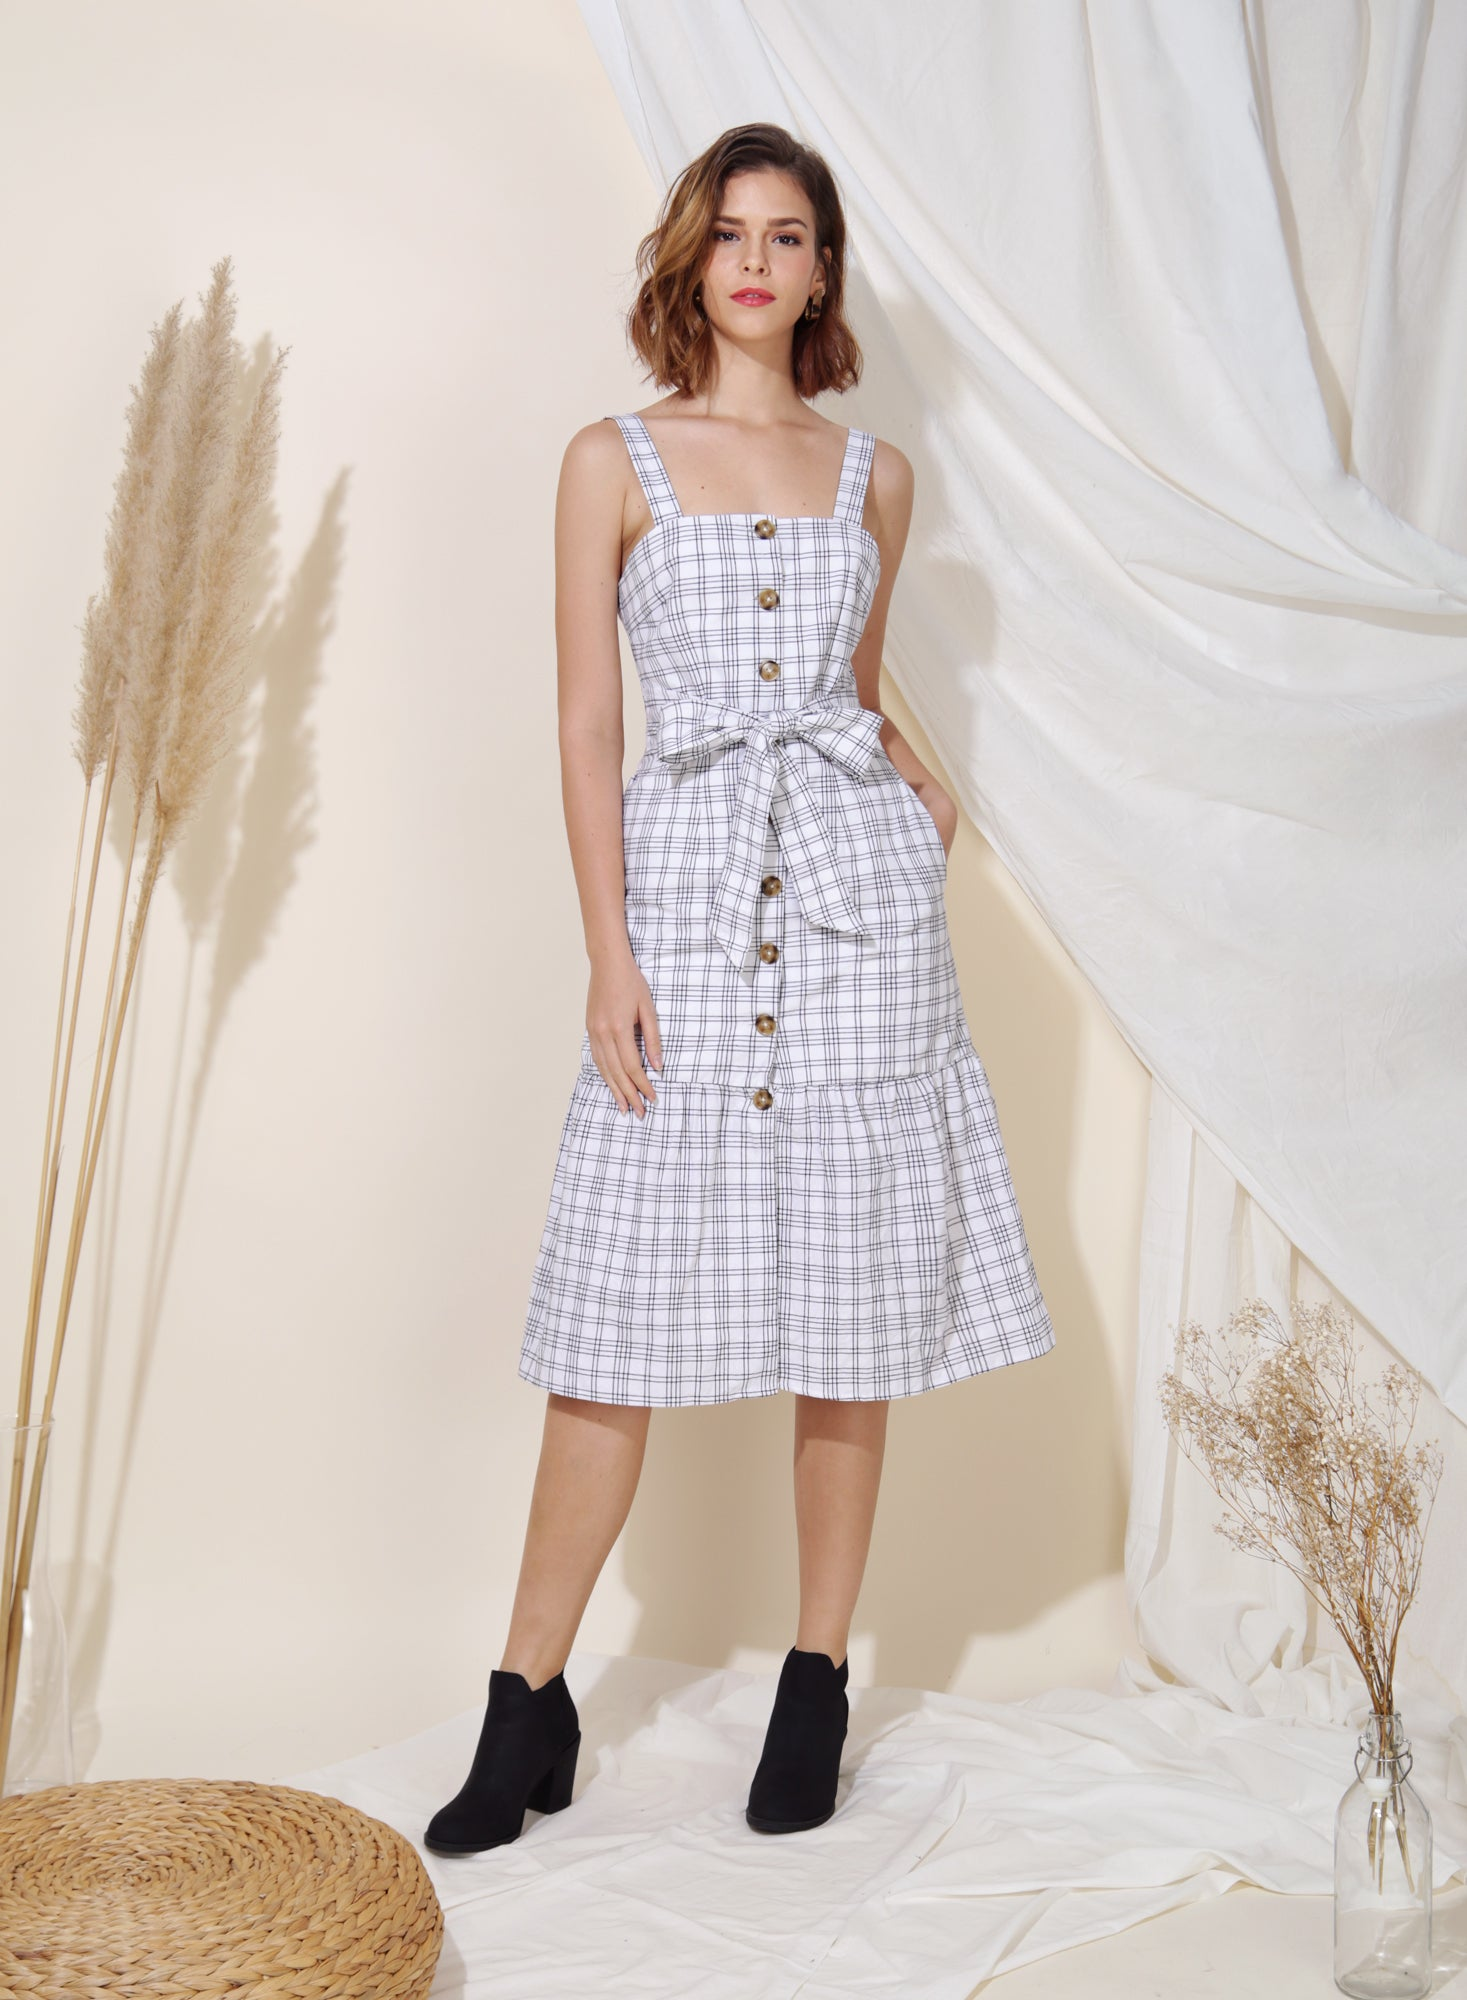 Infinity Button Down Checks Dress (White) at $ 45.00 only sold at And Well Dressed Online Fashion Store Singapore